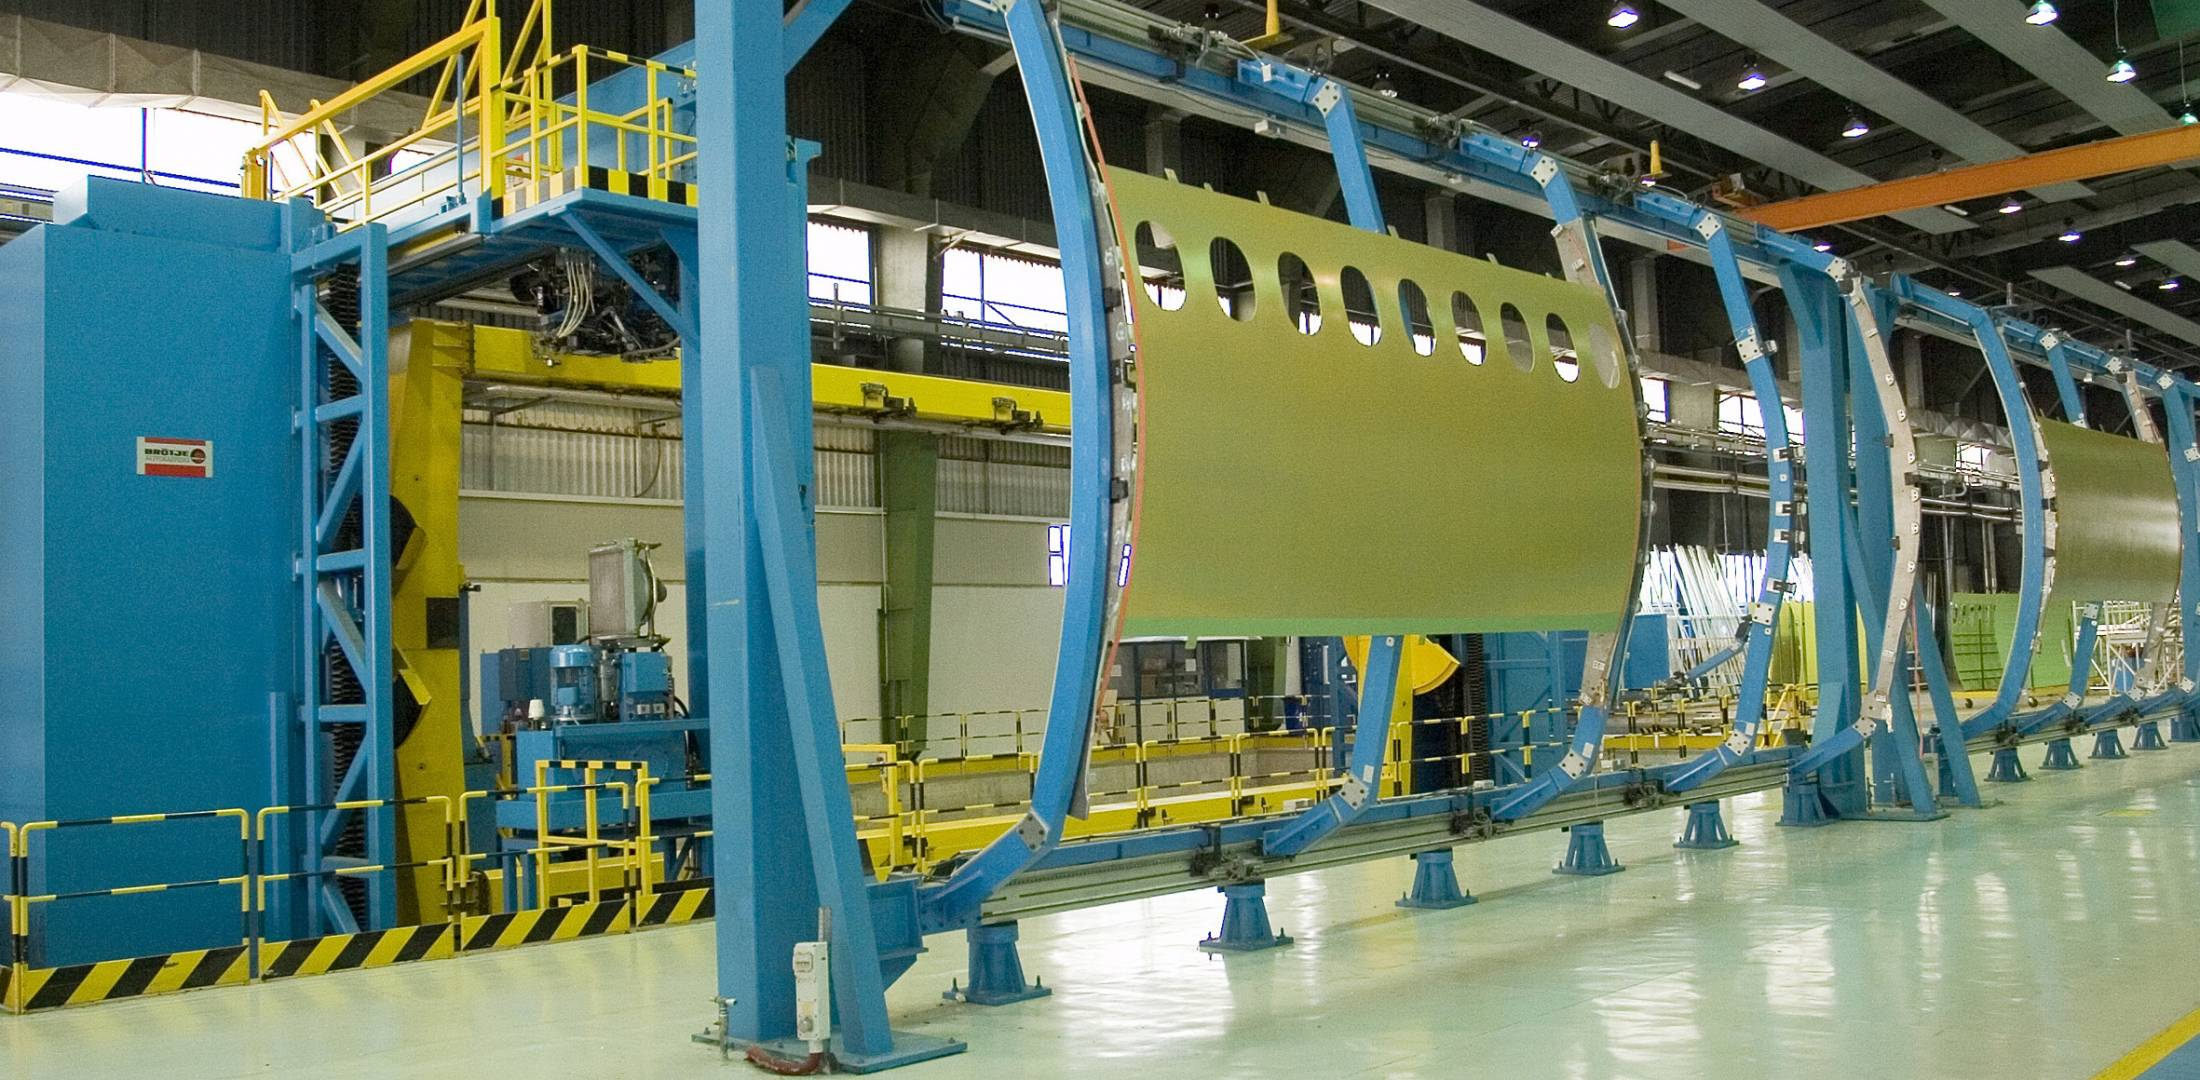 Restoring Alenia's aerostructures business to profitability is a priority